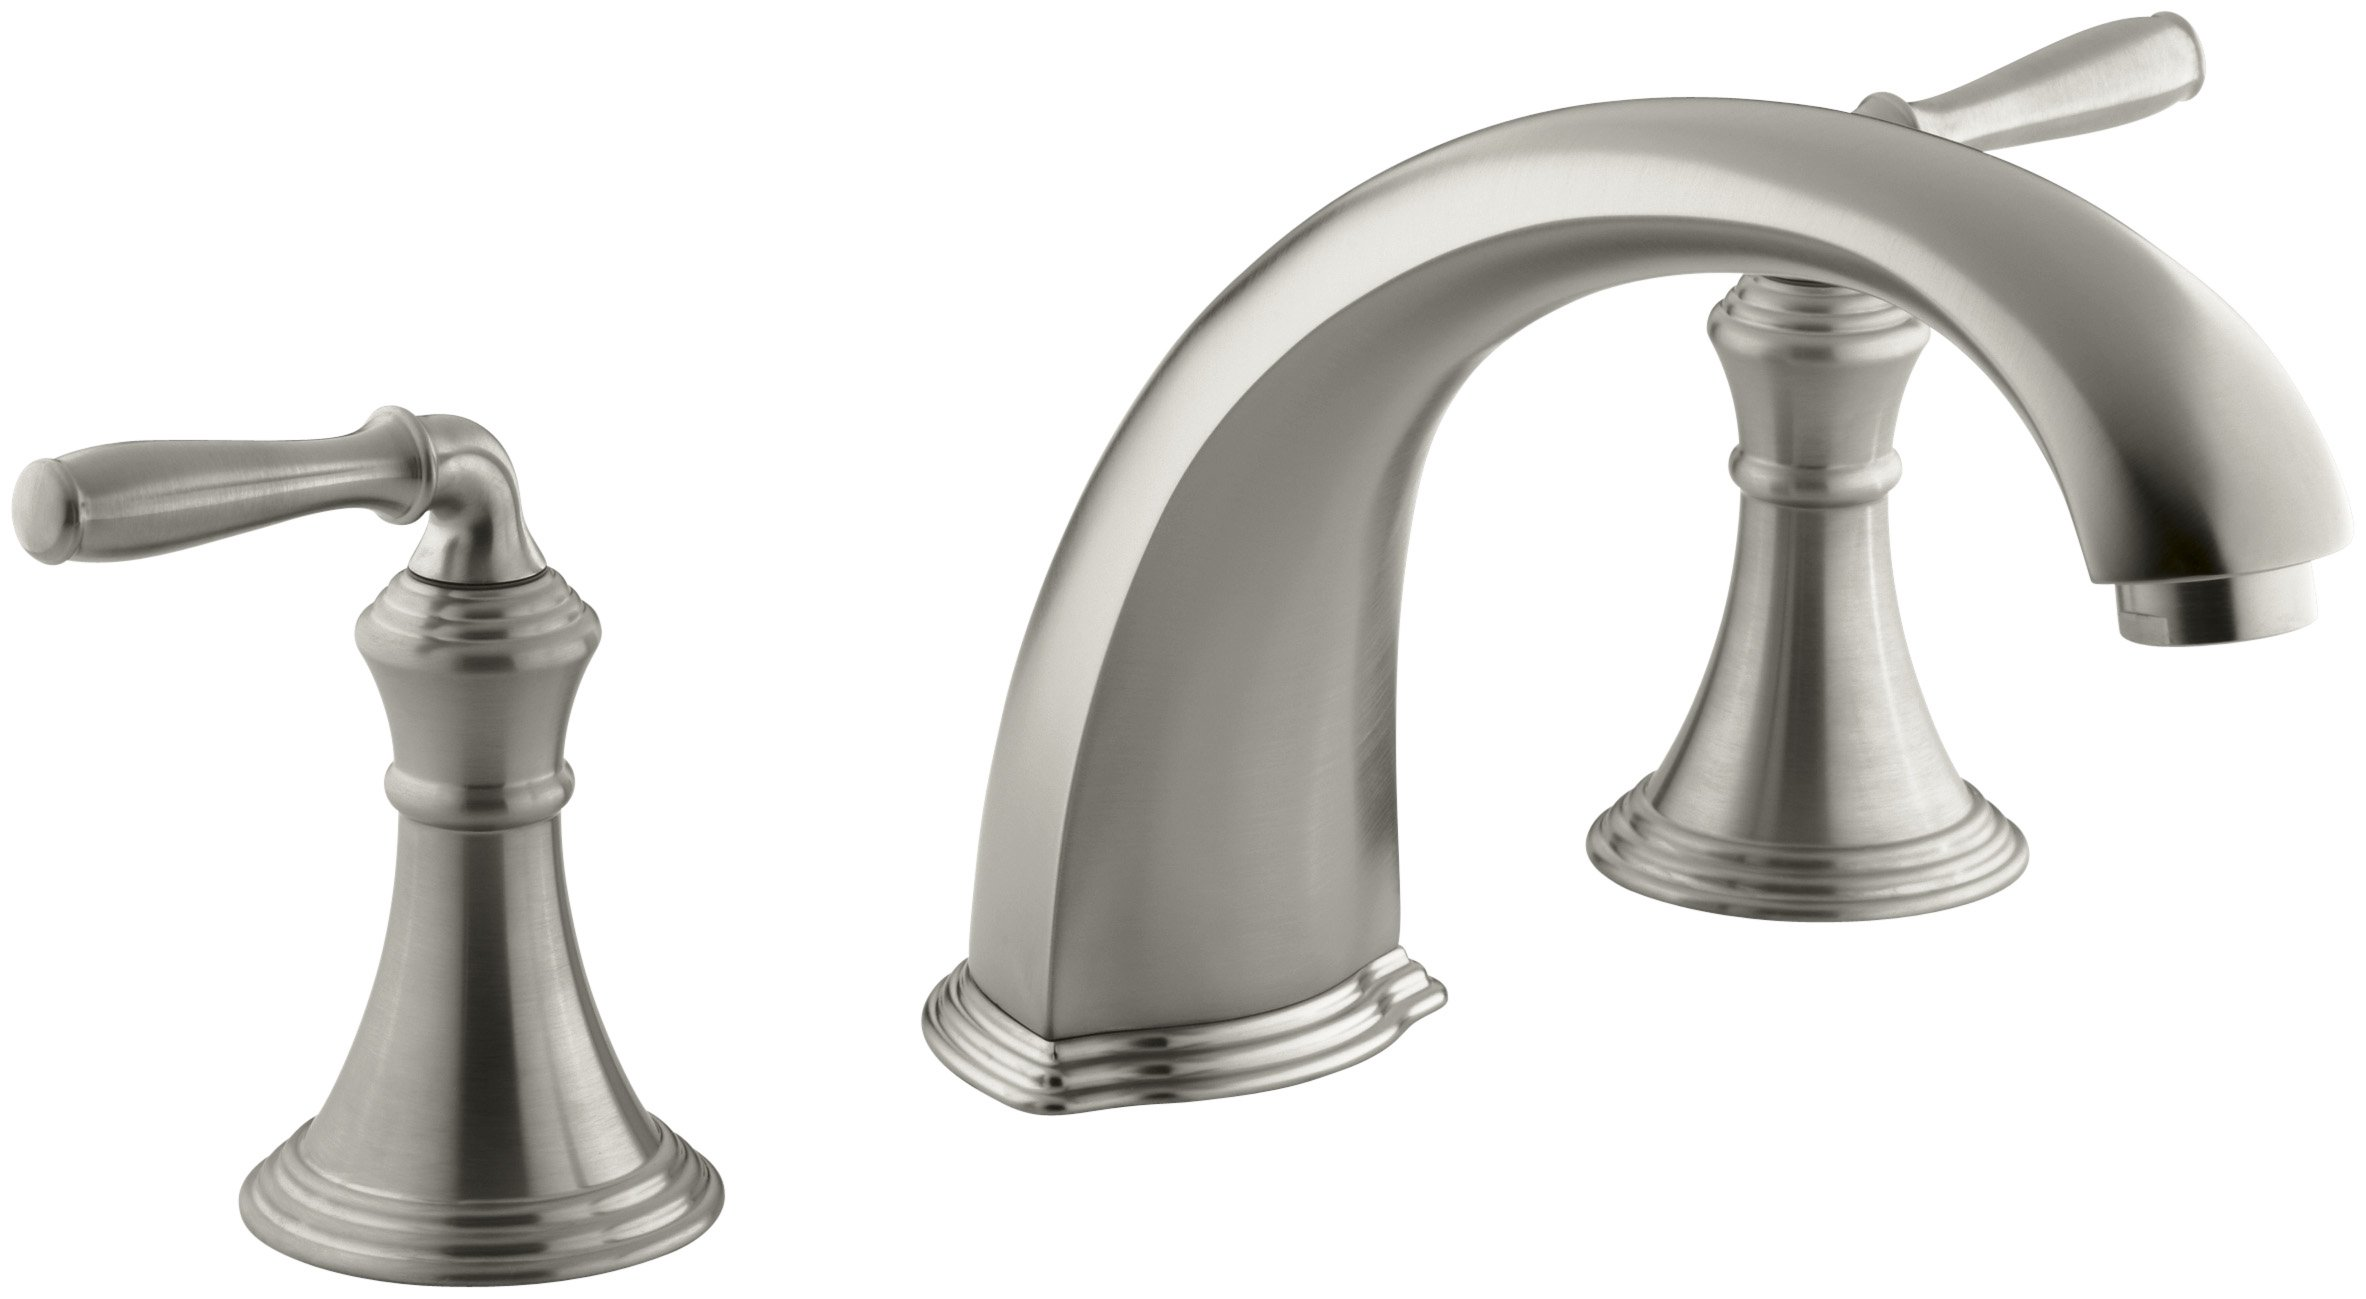 KOHLER K-T398-4-BN Devonshire Deck-/rim-mount Bath Faucet Trim for High-flow Valve with 9 Inch Non-diverter Spout and Lever Handles (Valve Not Included) by Kohler